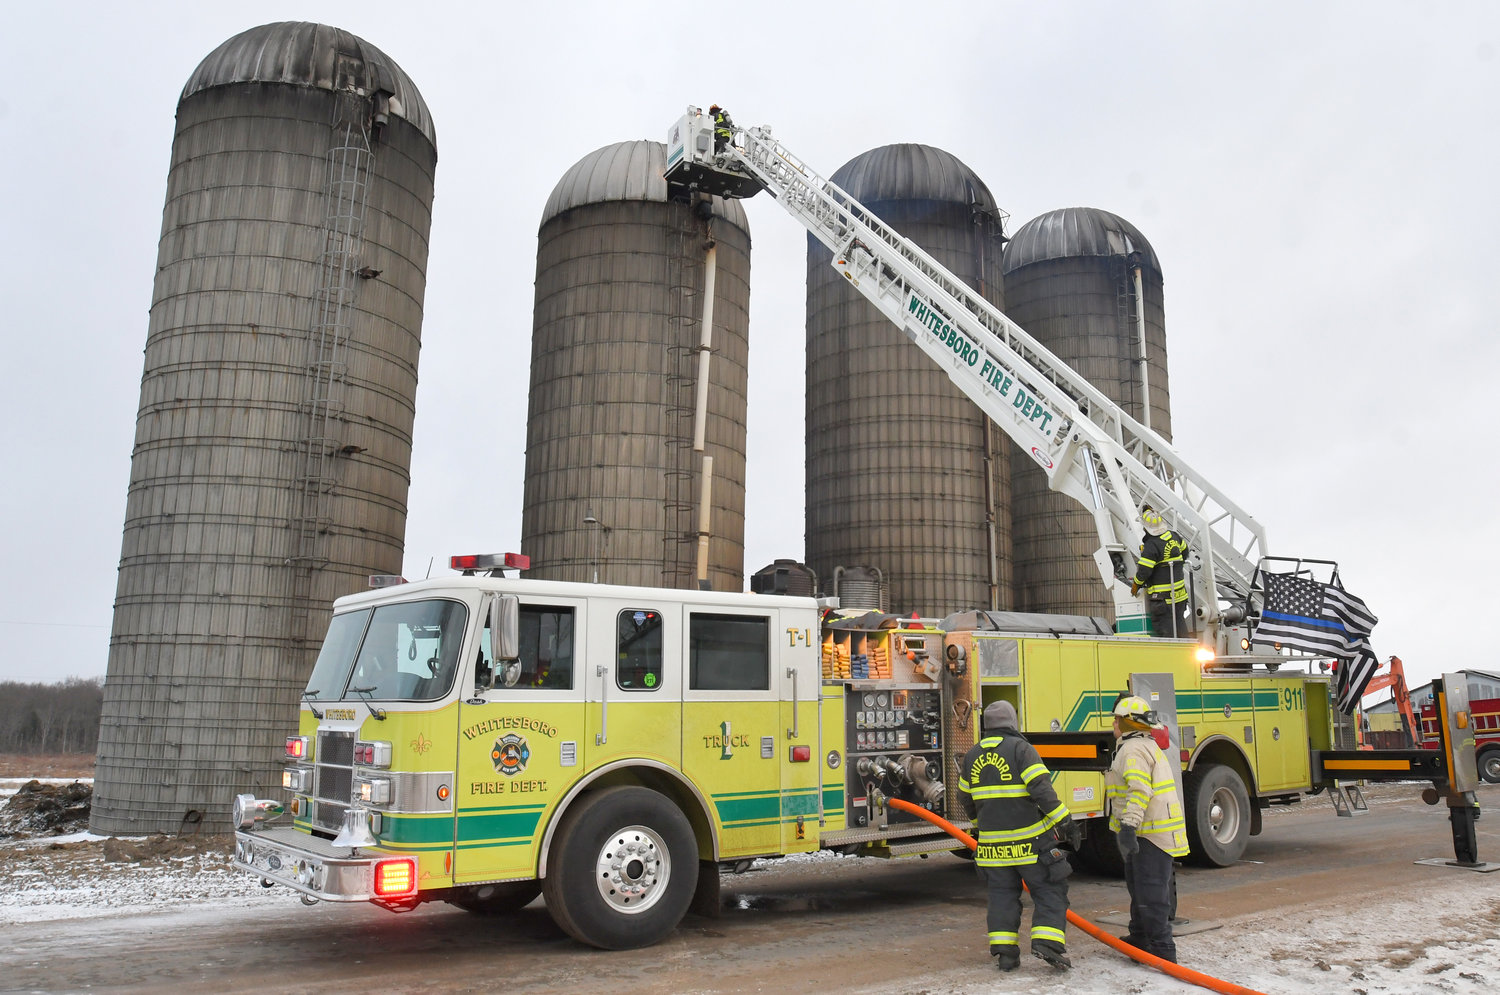 SILO FIRE — A ladder truck was needed to get hose lines down inside a silo fire at the Terry Jones Farm on Whittaker Road in Trenton this morning. One of fire silos started burning on the inside, less than a week after the Jones family lost nearly 200 cows in a barn fire.